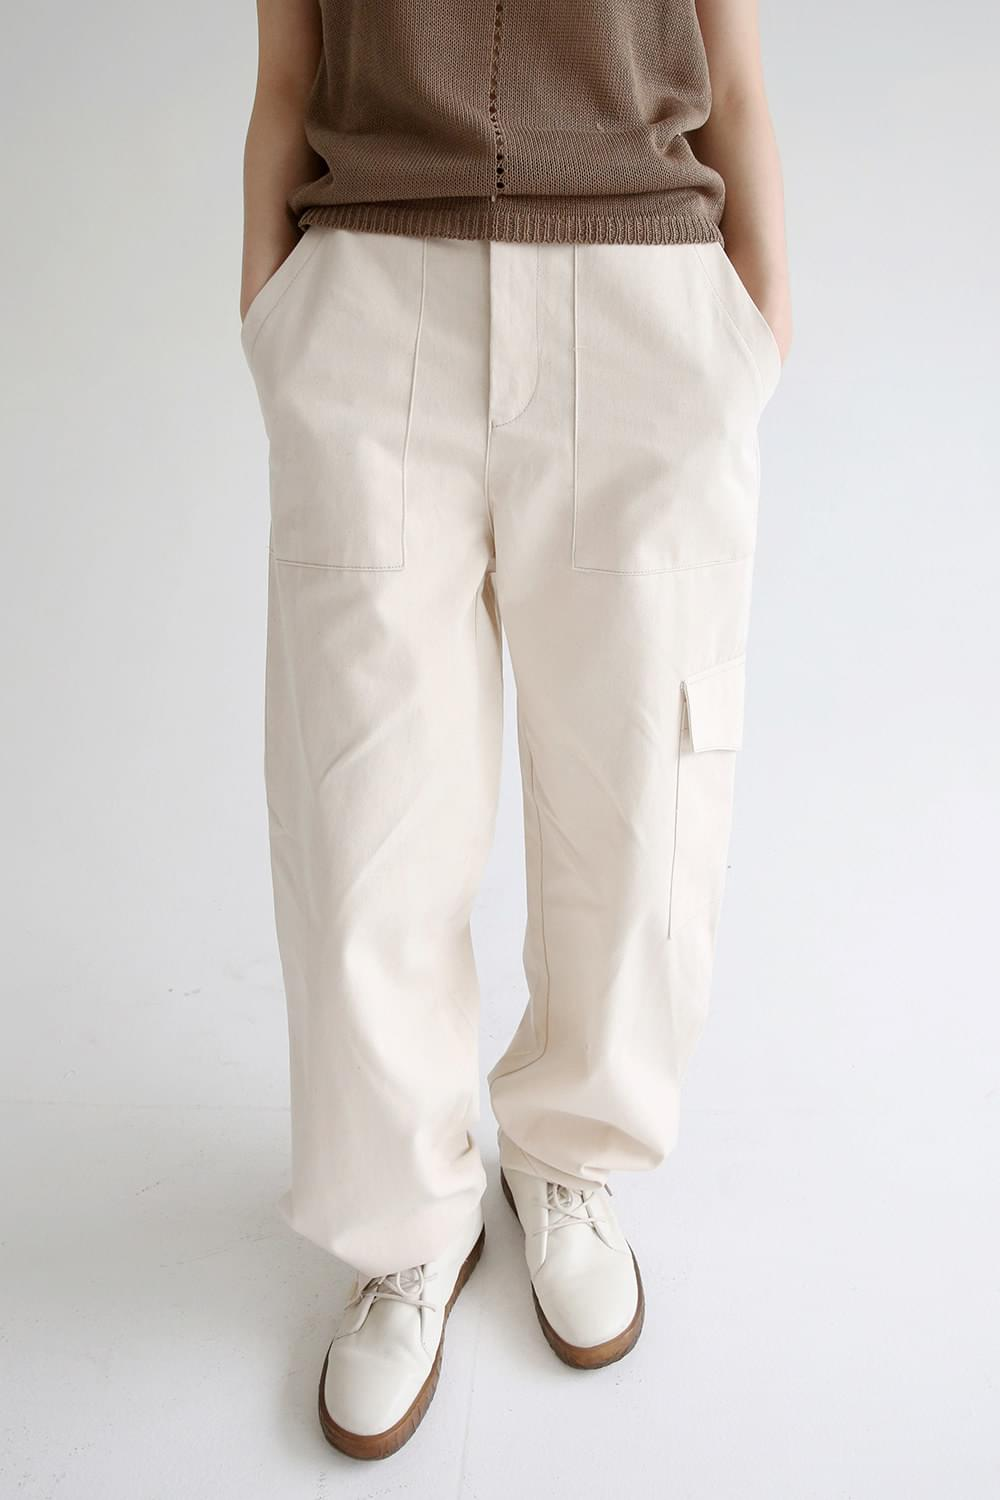 white stich detail over pants (ivory)